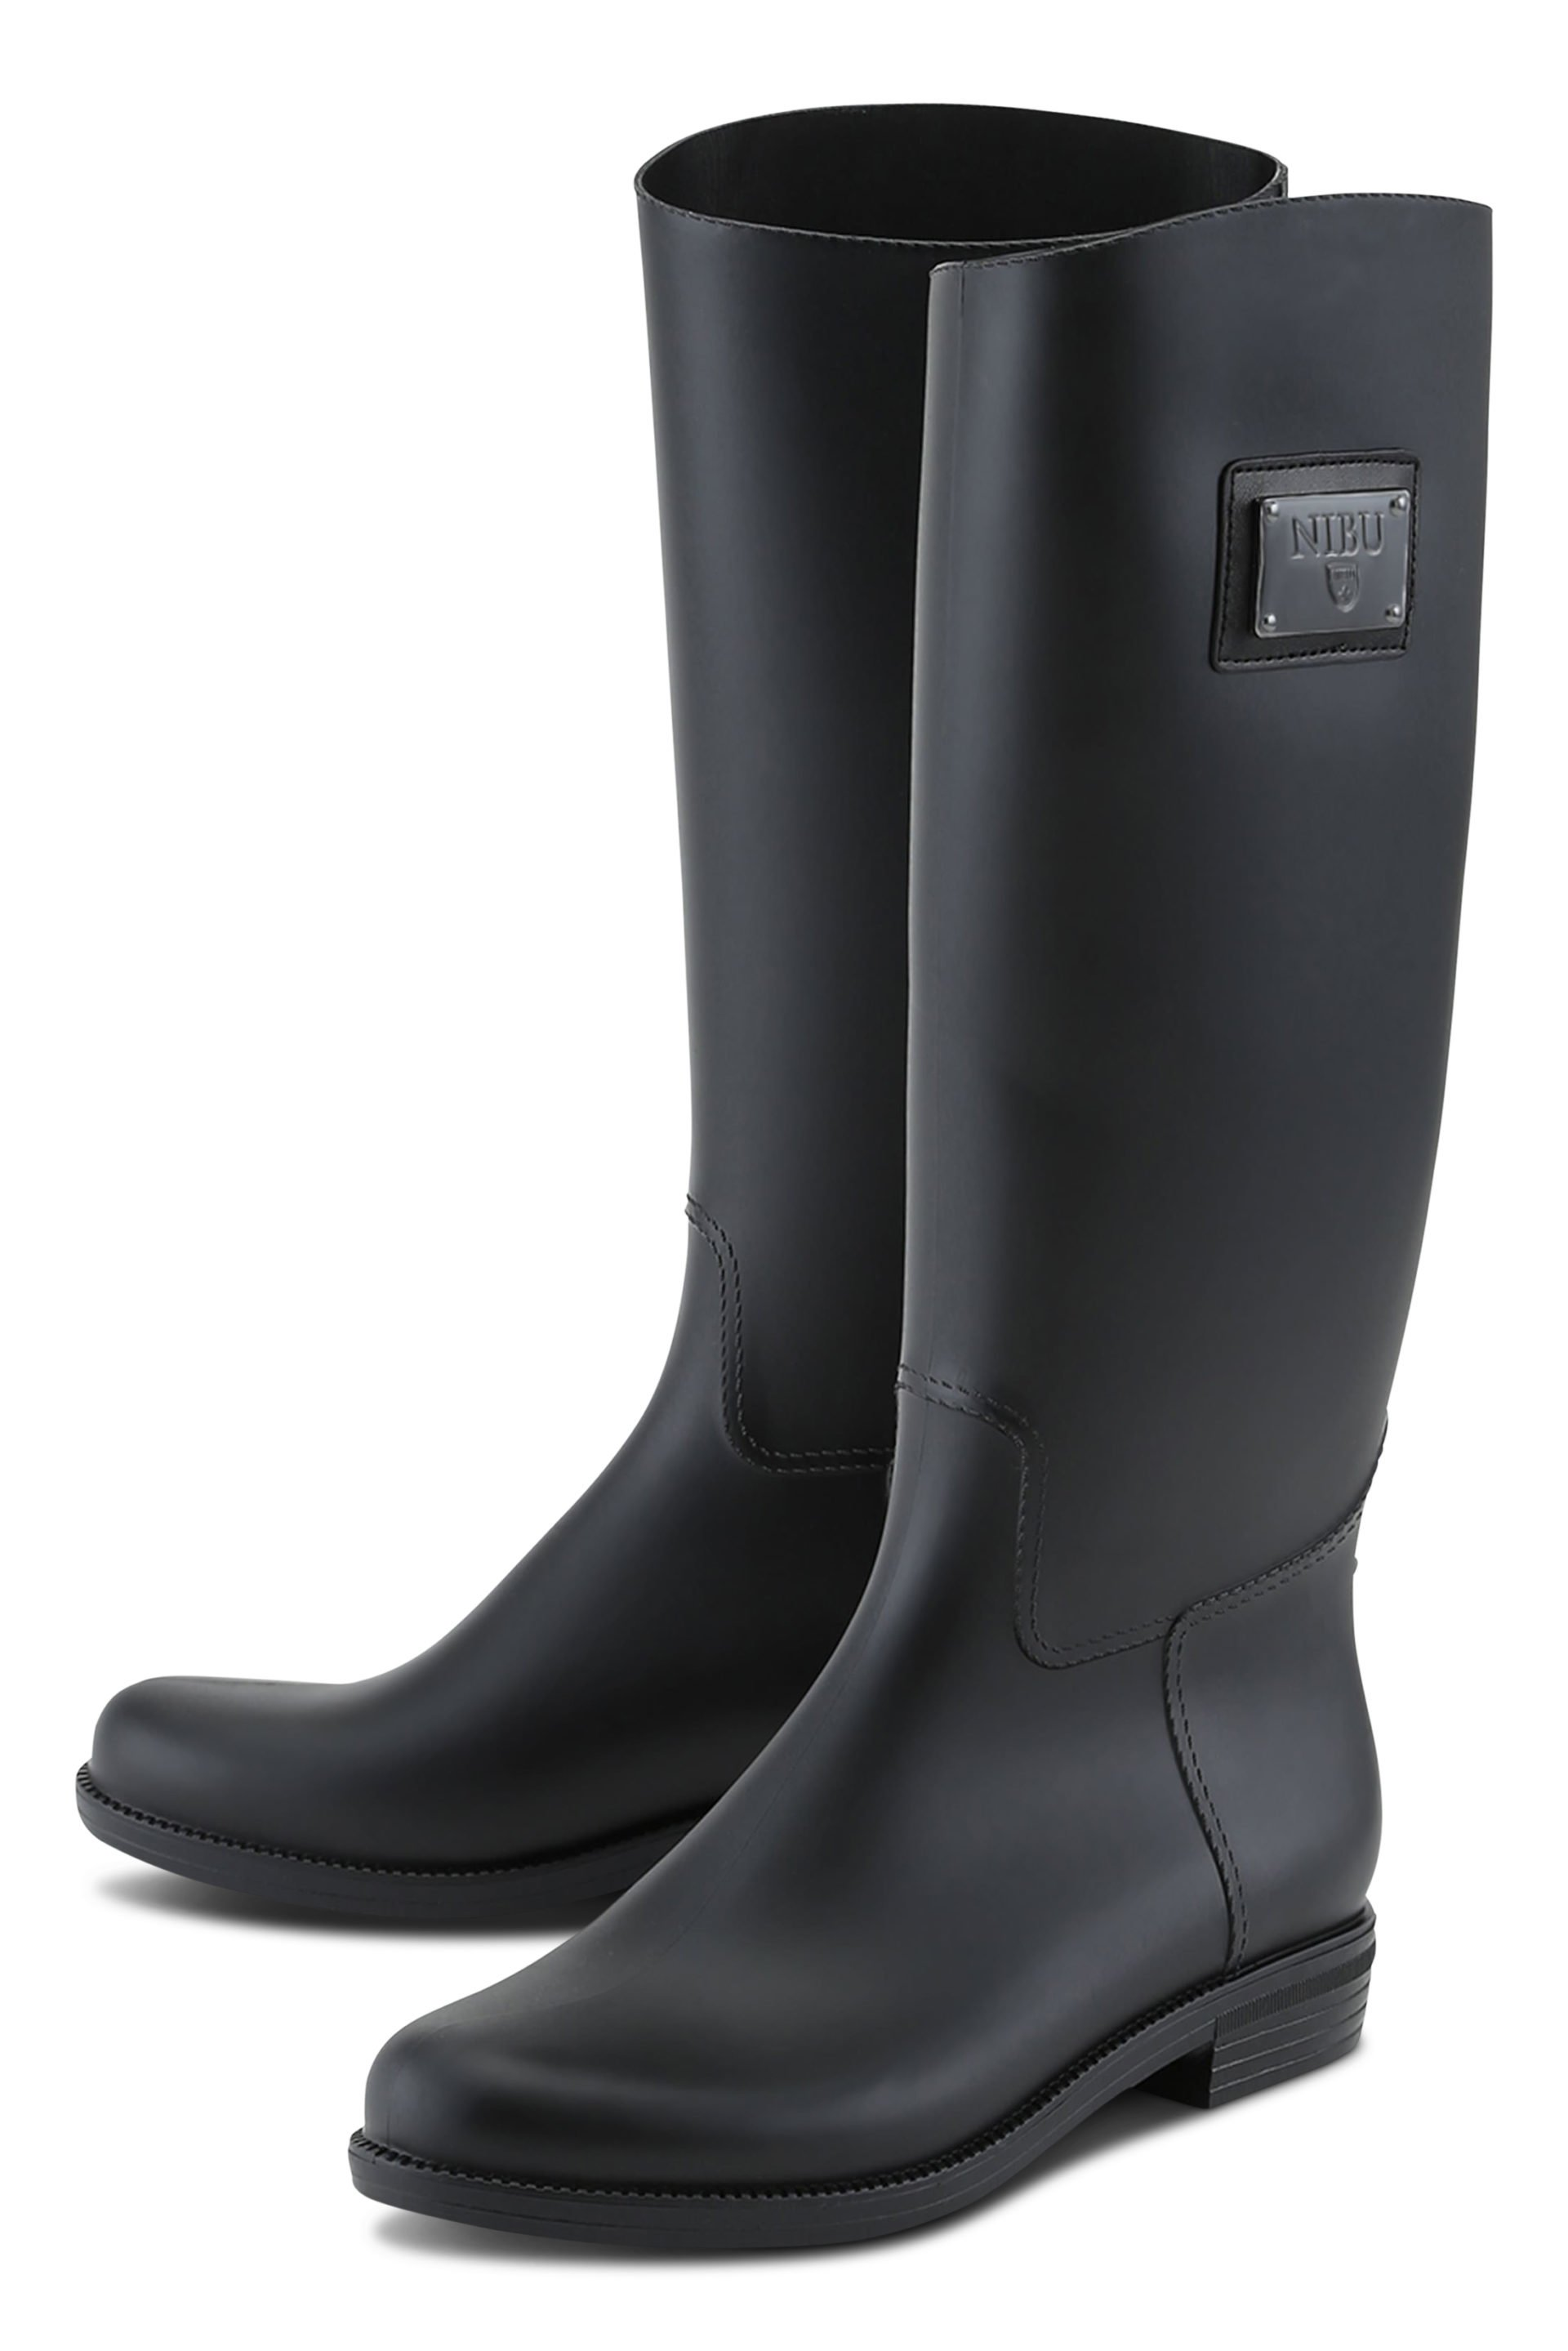 Black rainboots with black logo plate